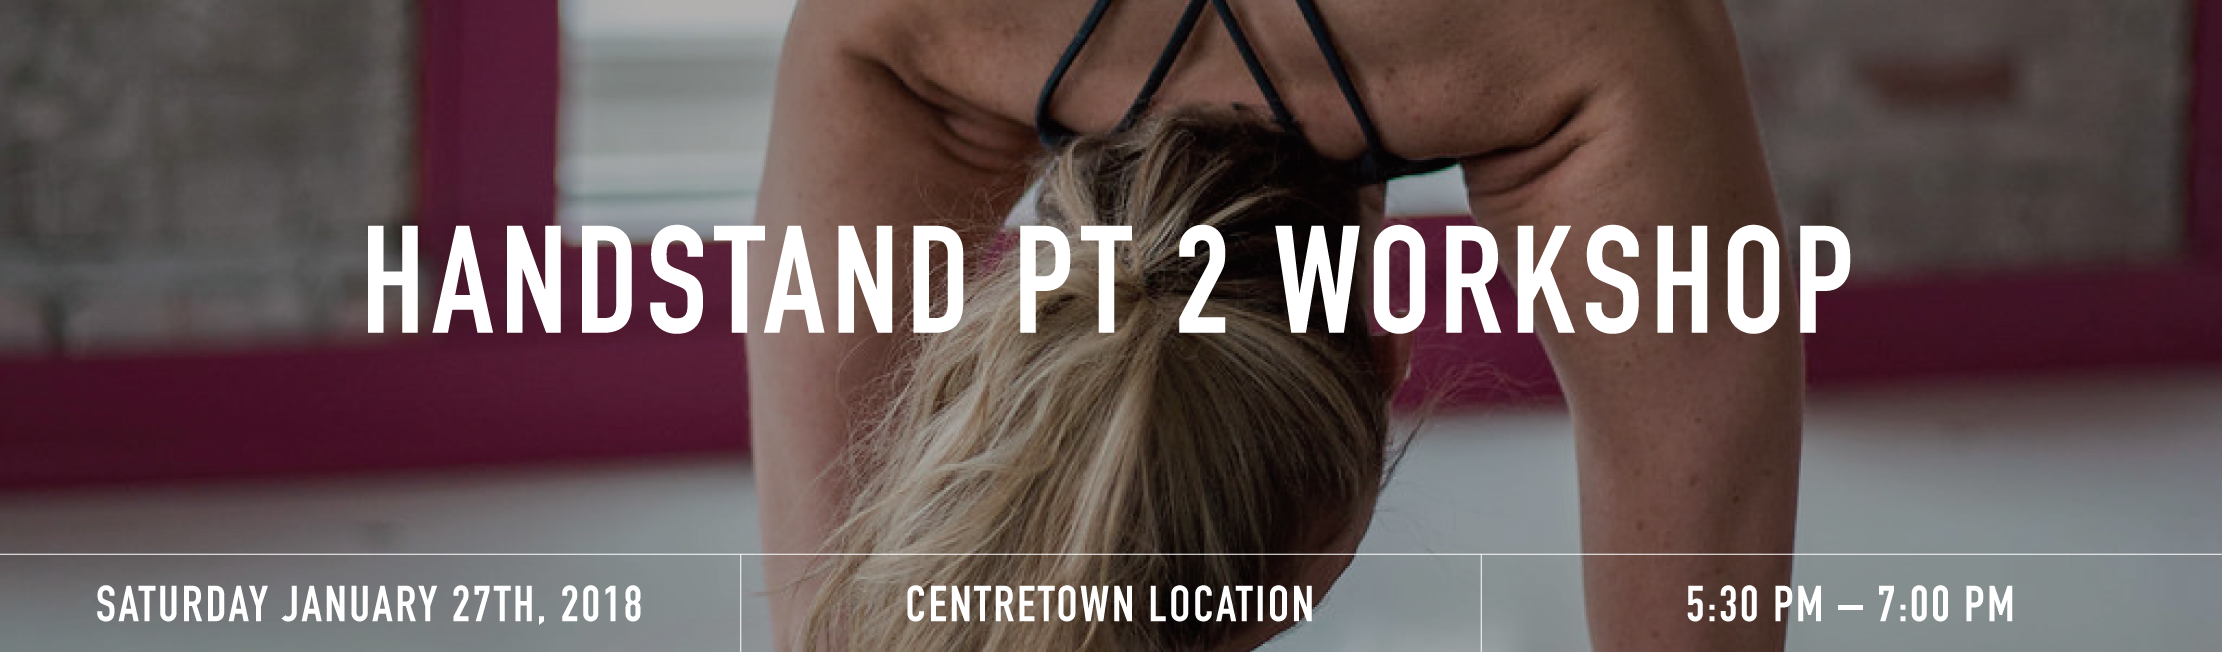 Handstand pt2 workshop banner